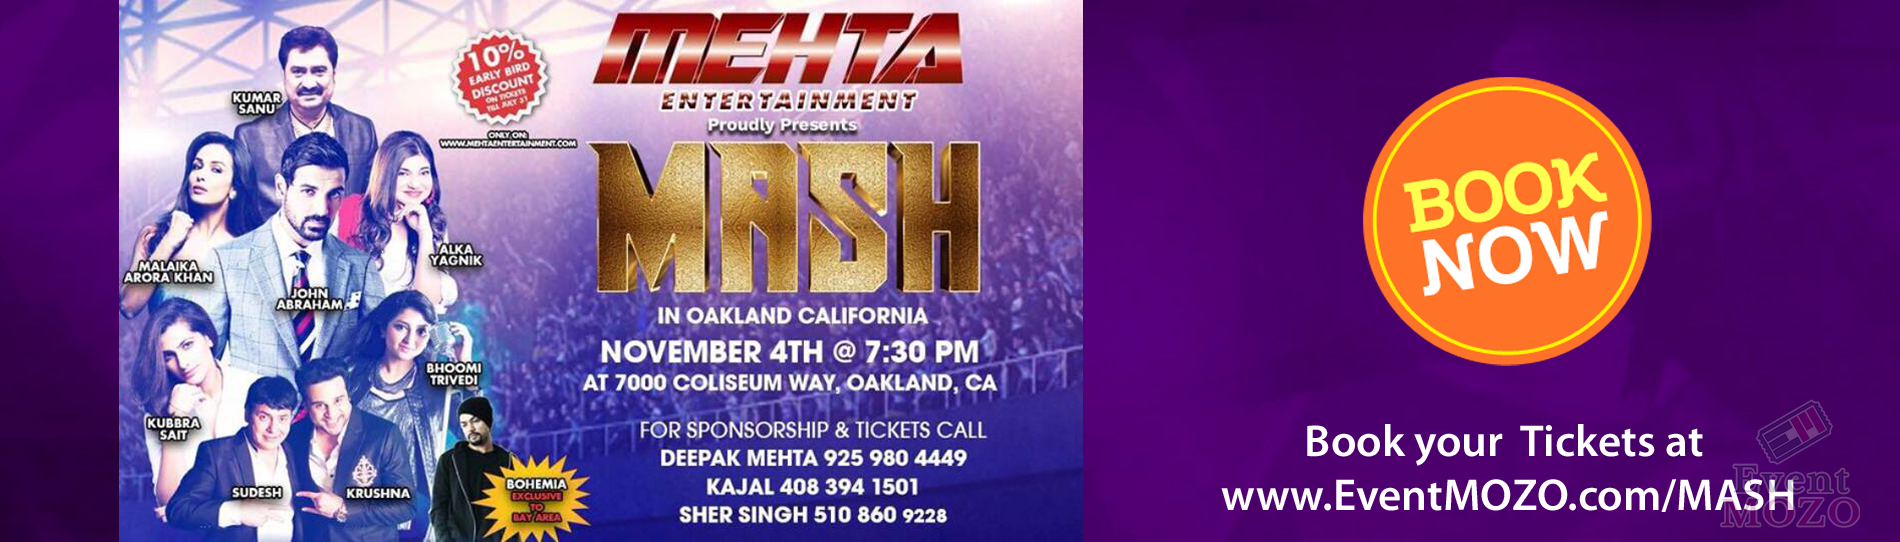 EventMozo Mehta Presents Bollywood MASH